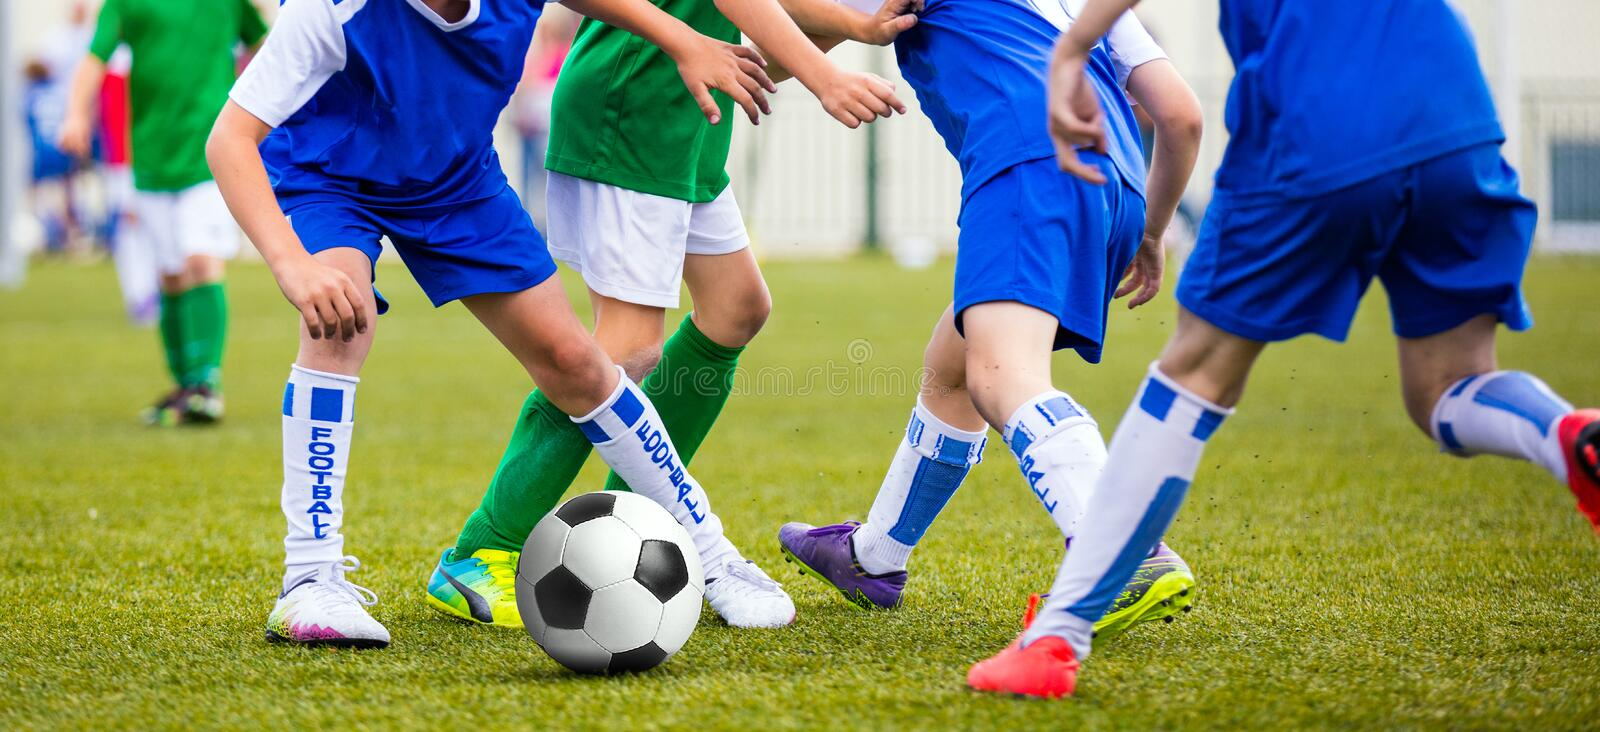 Soccer game for kids. Children kicking football ball. Boys in blue and green soccer shirts playing football tournament on sports field royalty free stock images